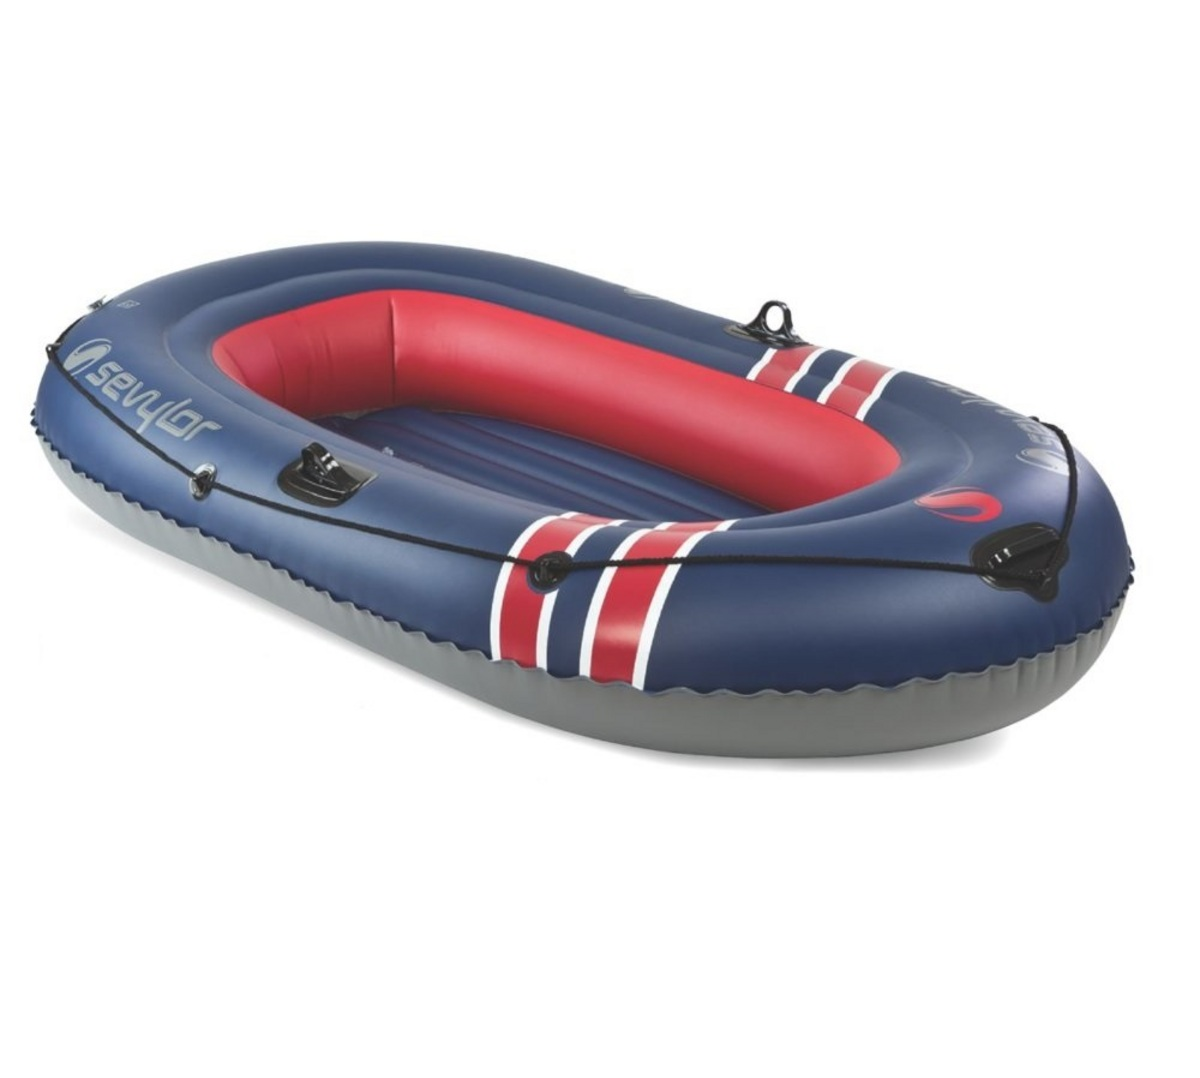 Sevylor Caravelle 300 3 Person Inflatable Boat